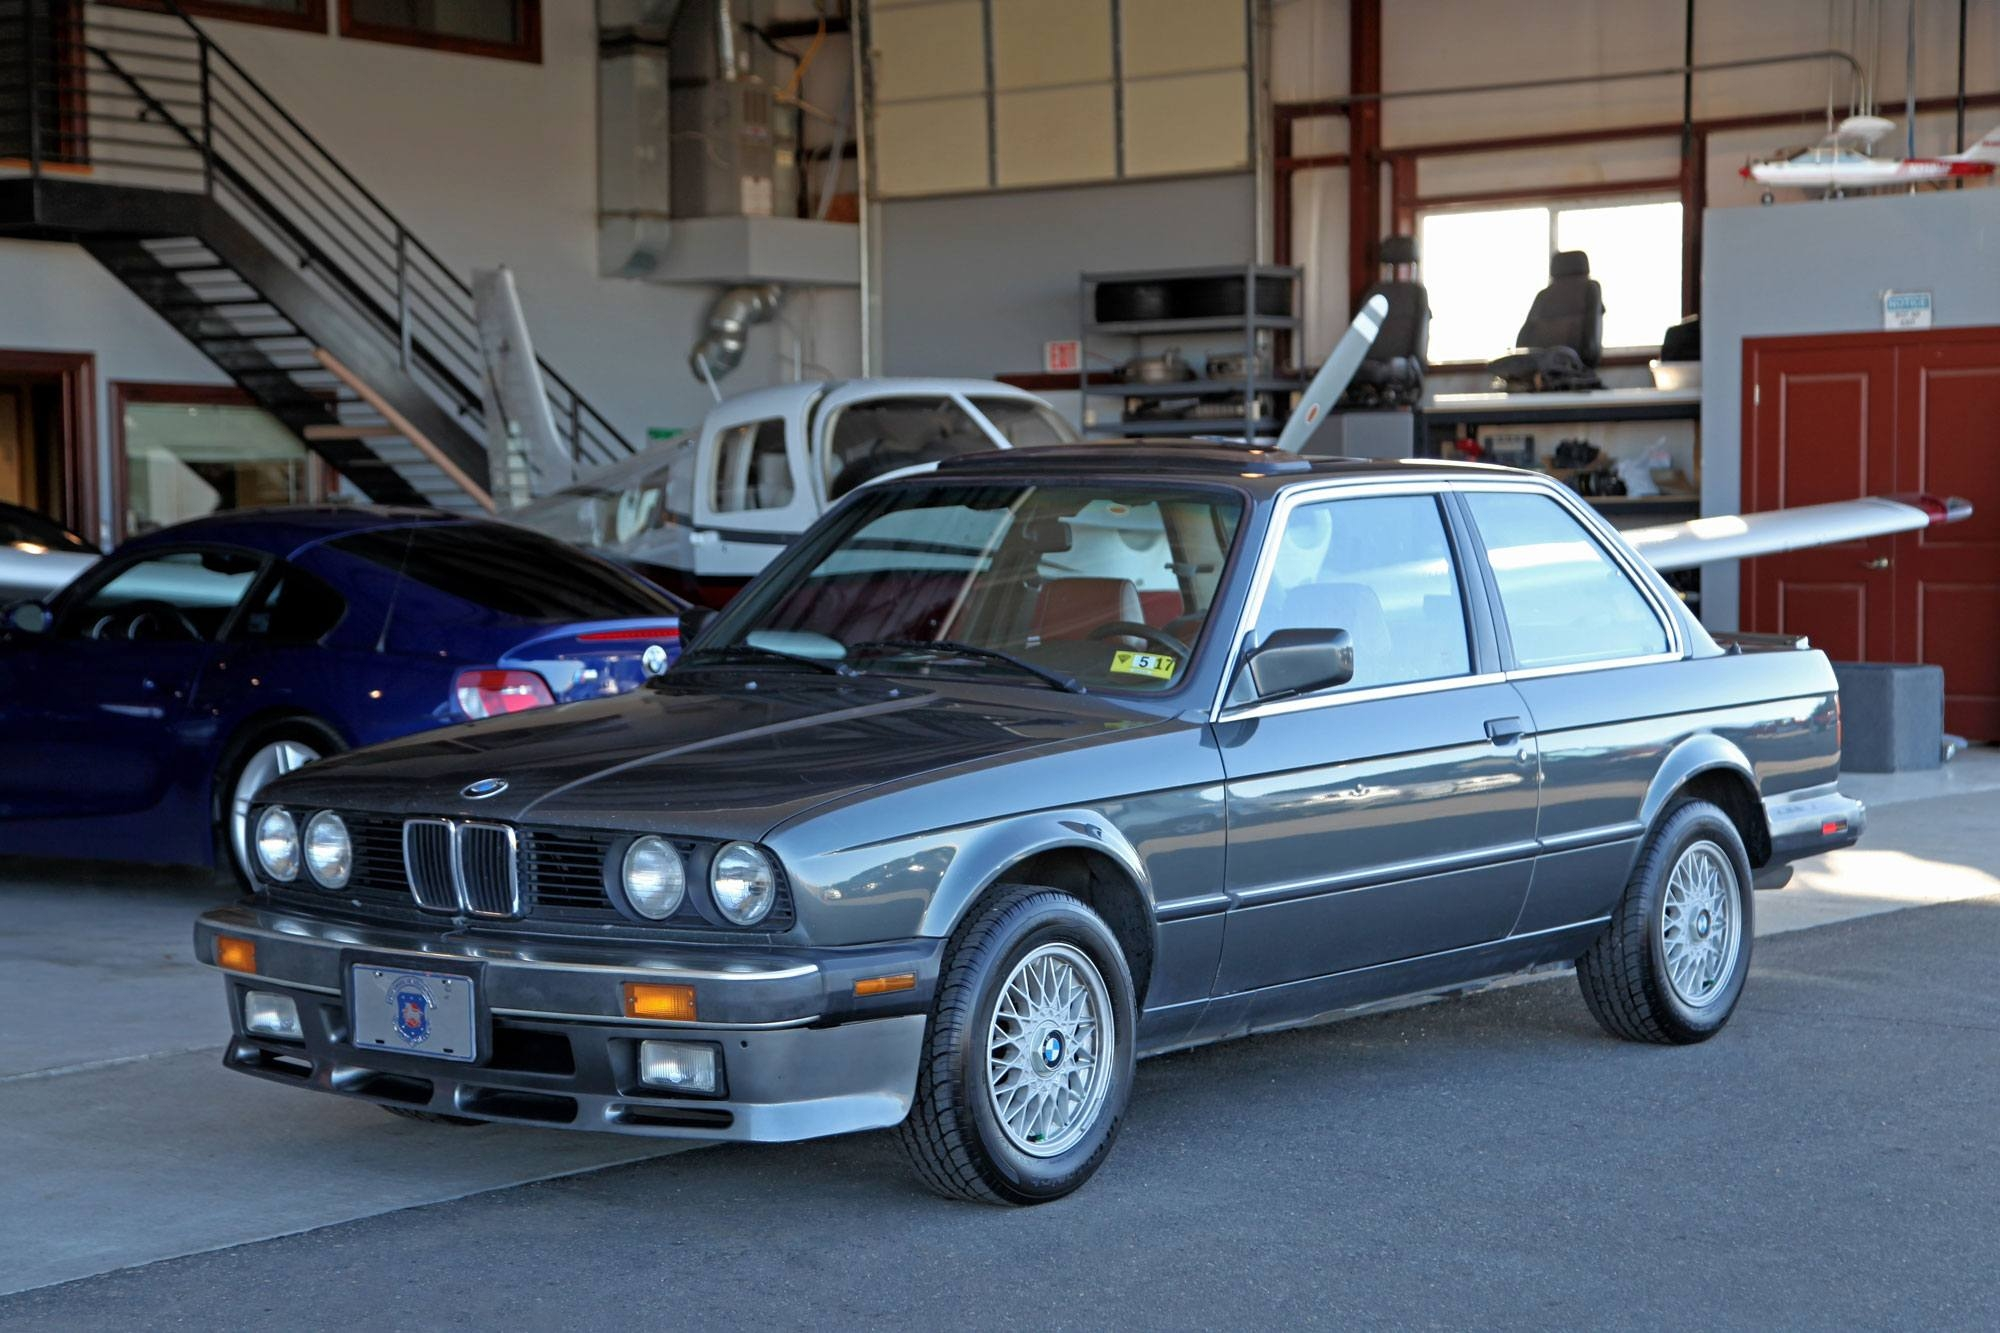 1987 BMW (E30) 325iS